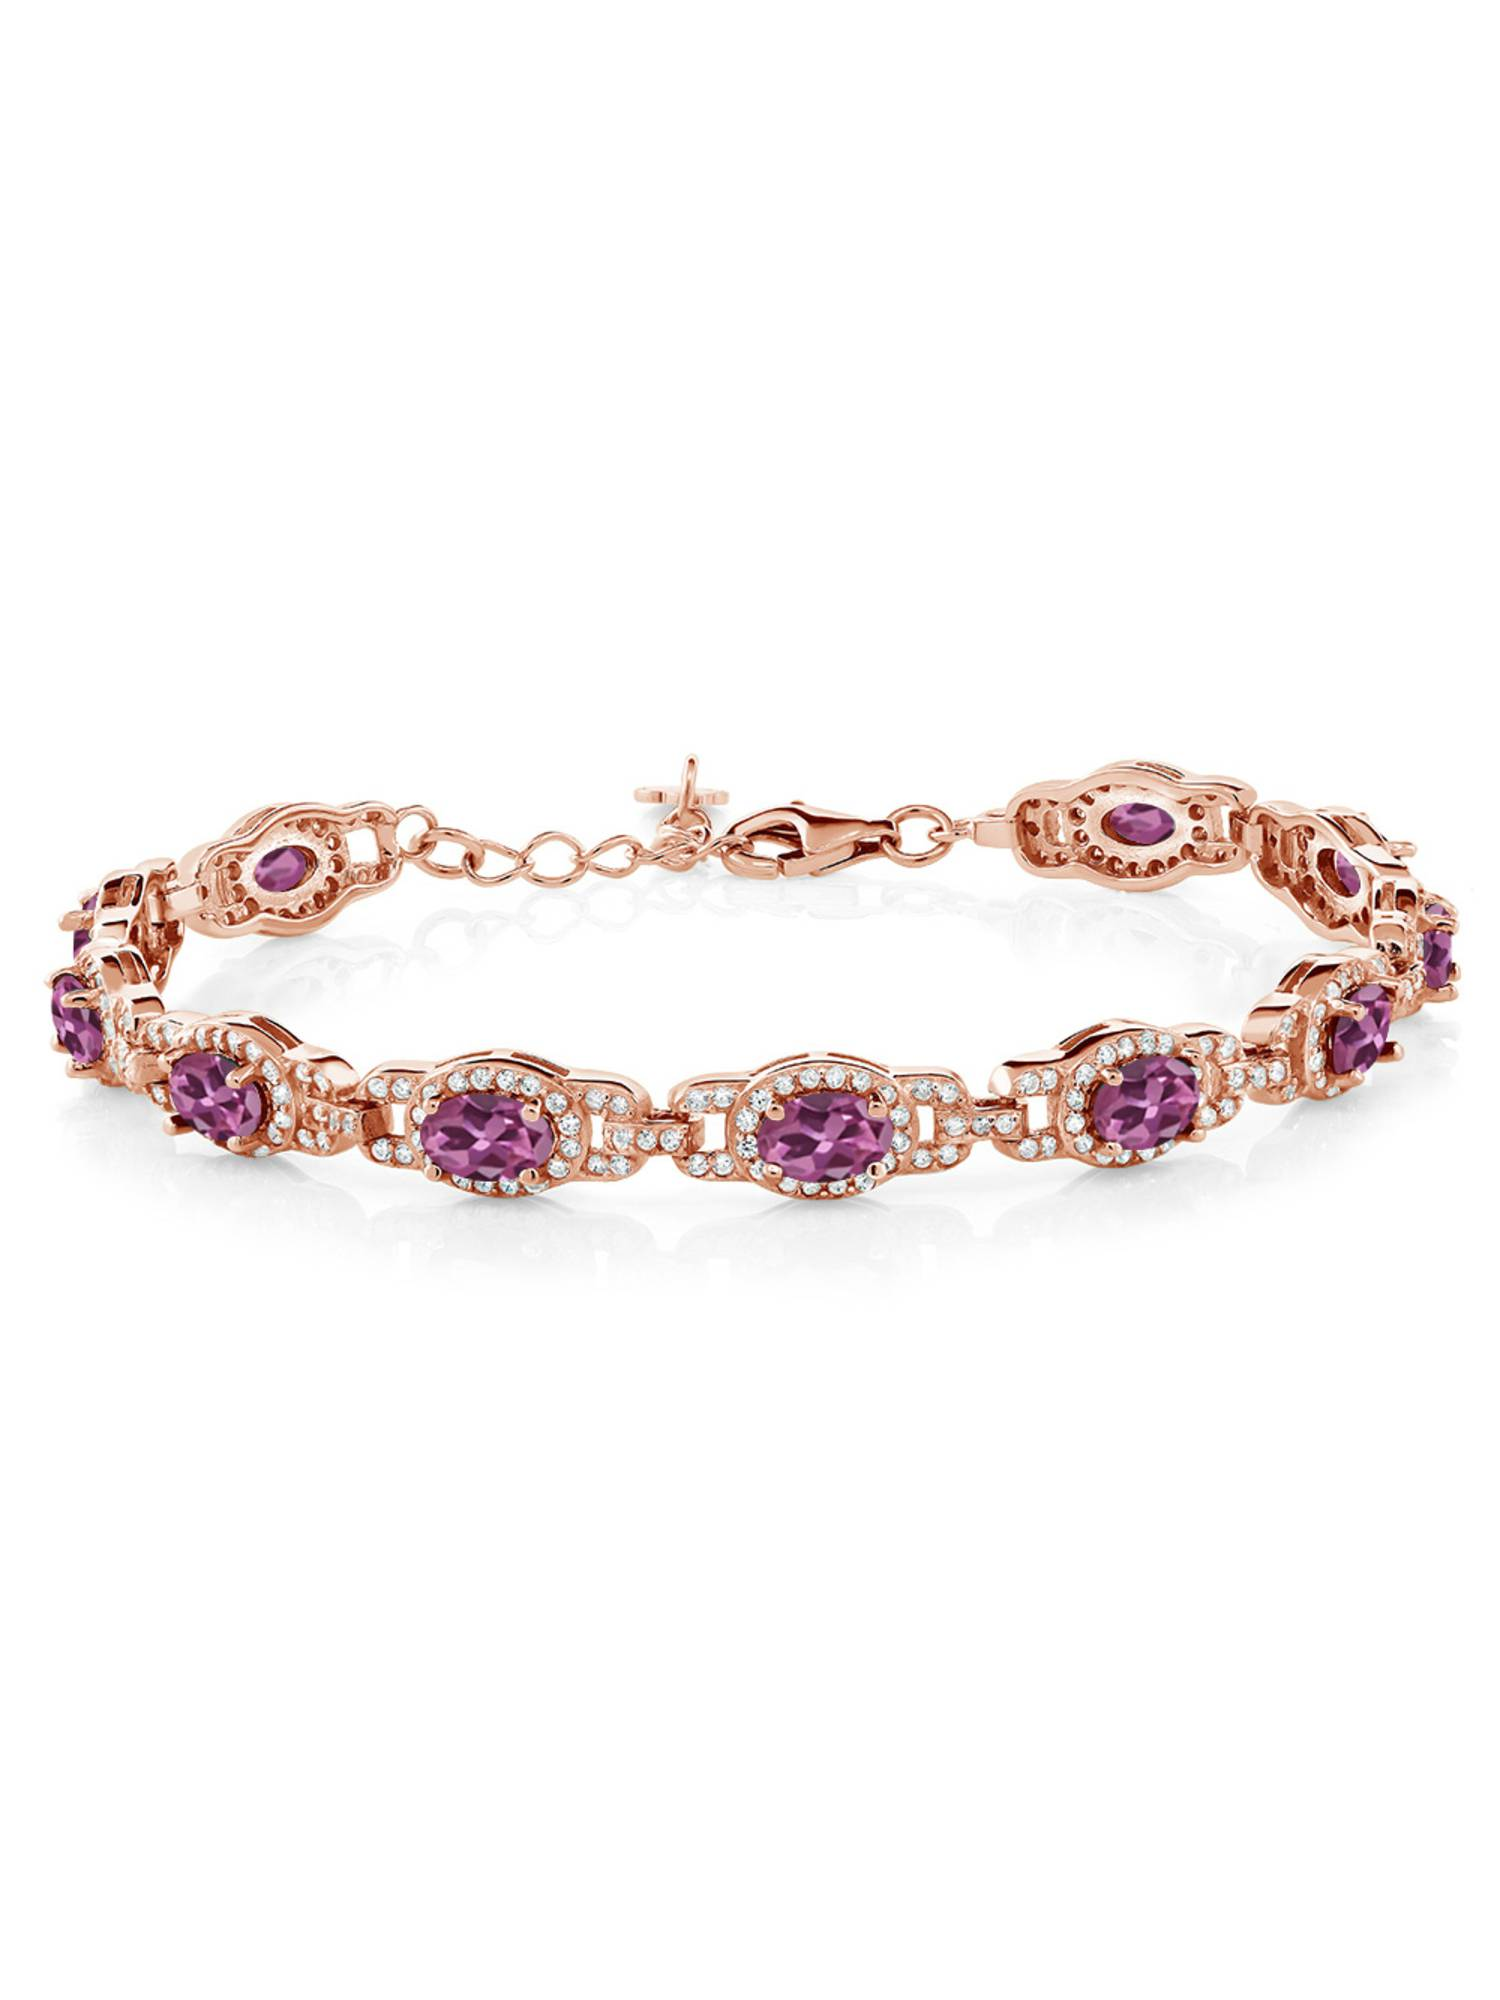 7.78 Ct Oval Pink Tourmaline AAA 18K Rose Gold Plated Silver Bracelet by